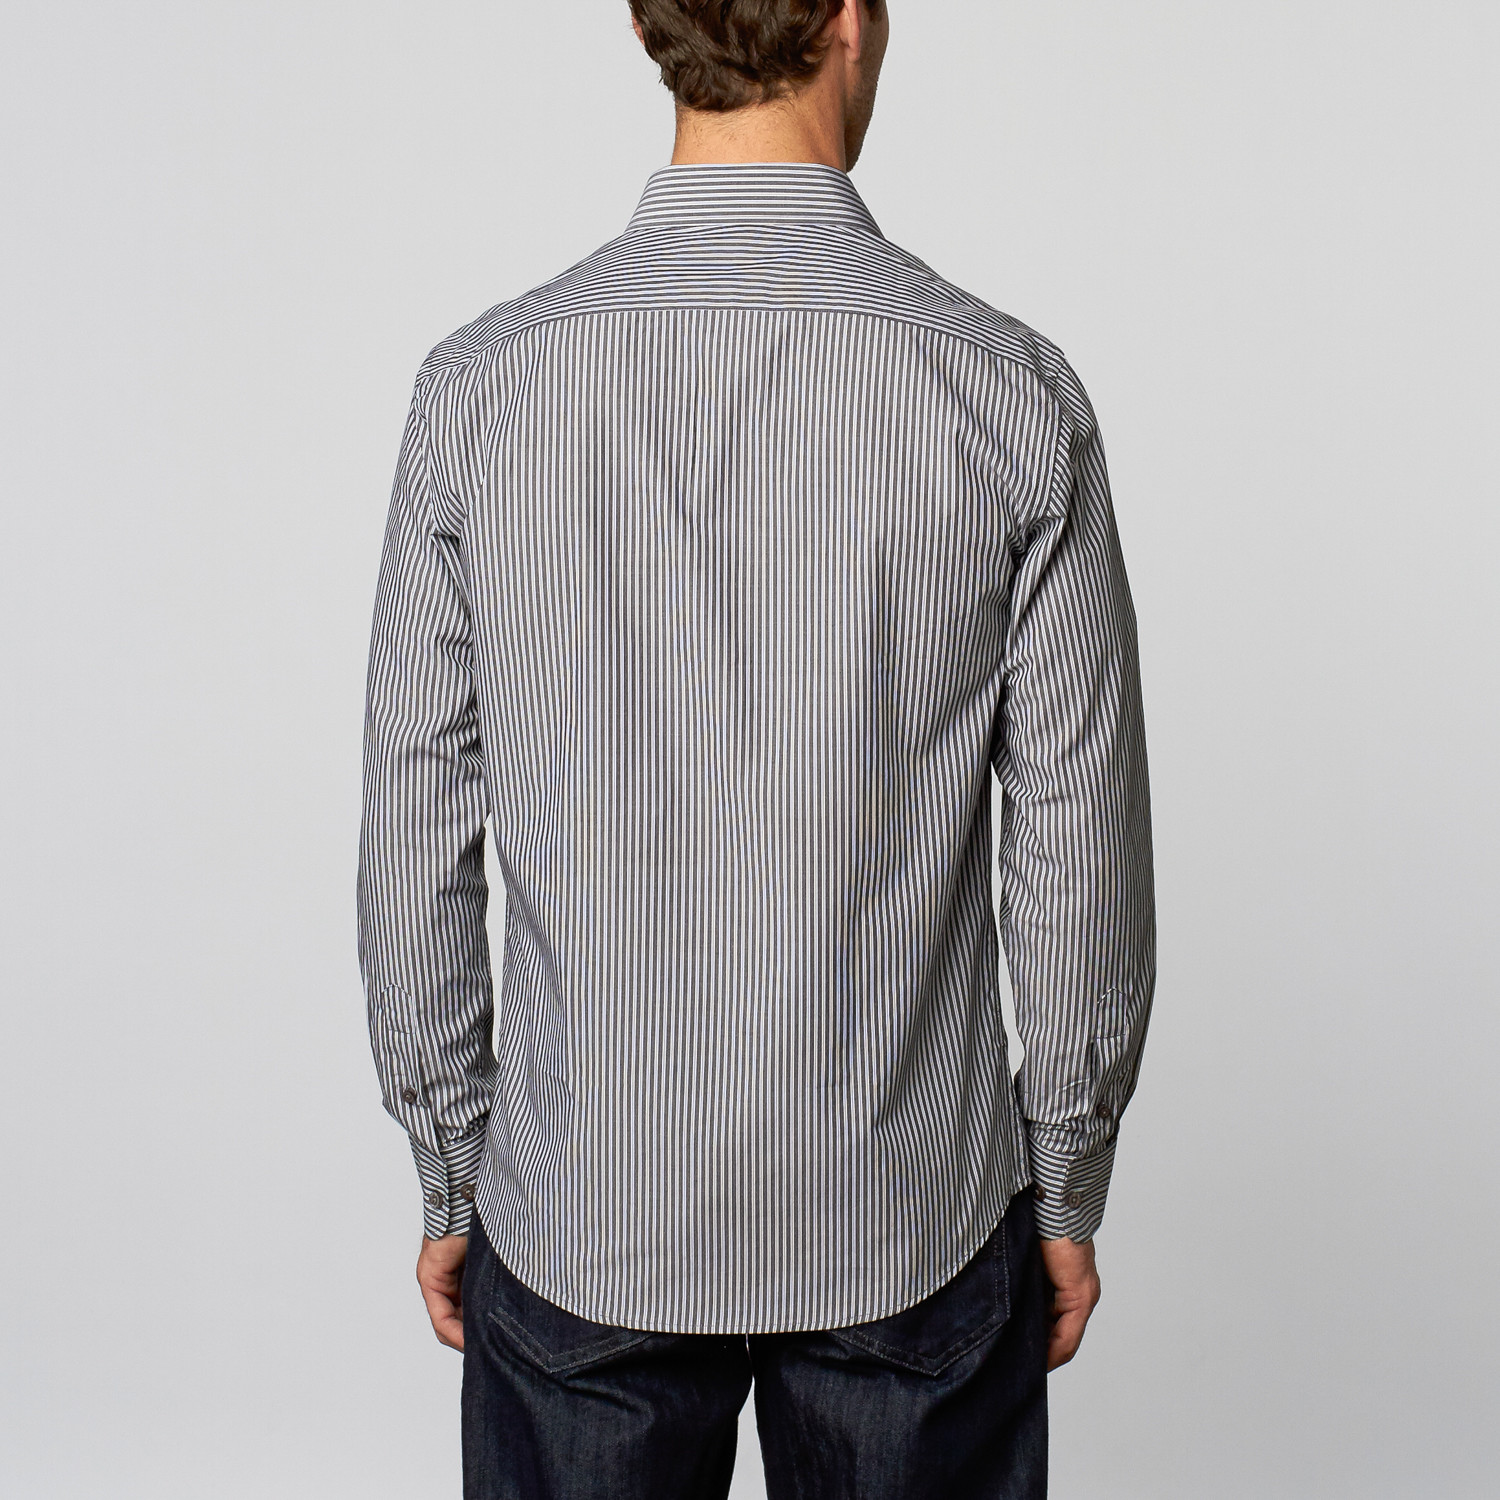 Vertical stripe dress shirt dark grey white s for Dark grey shirt dress